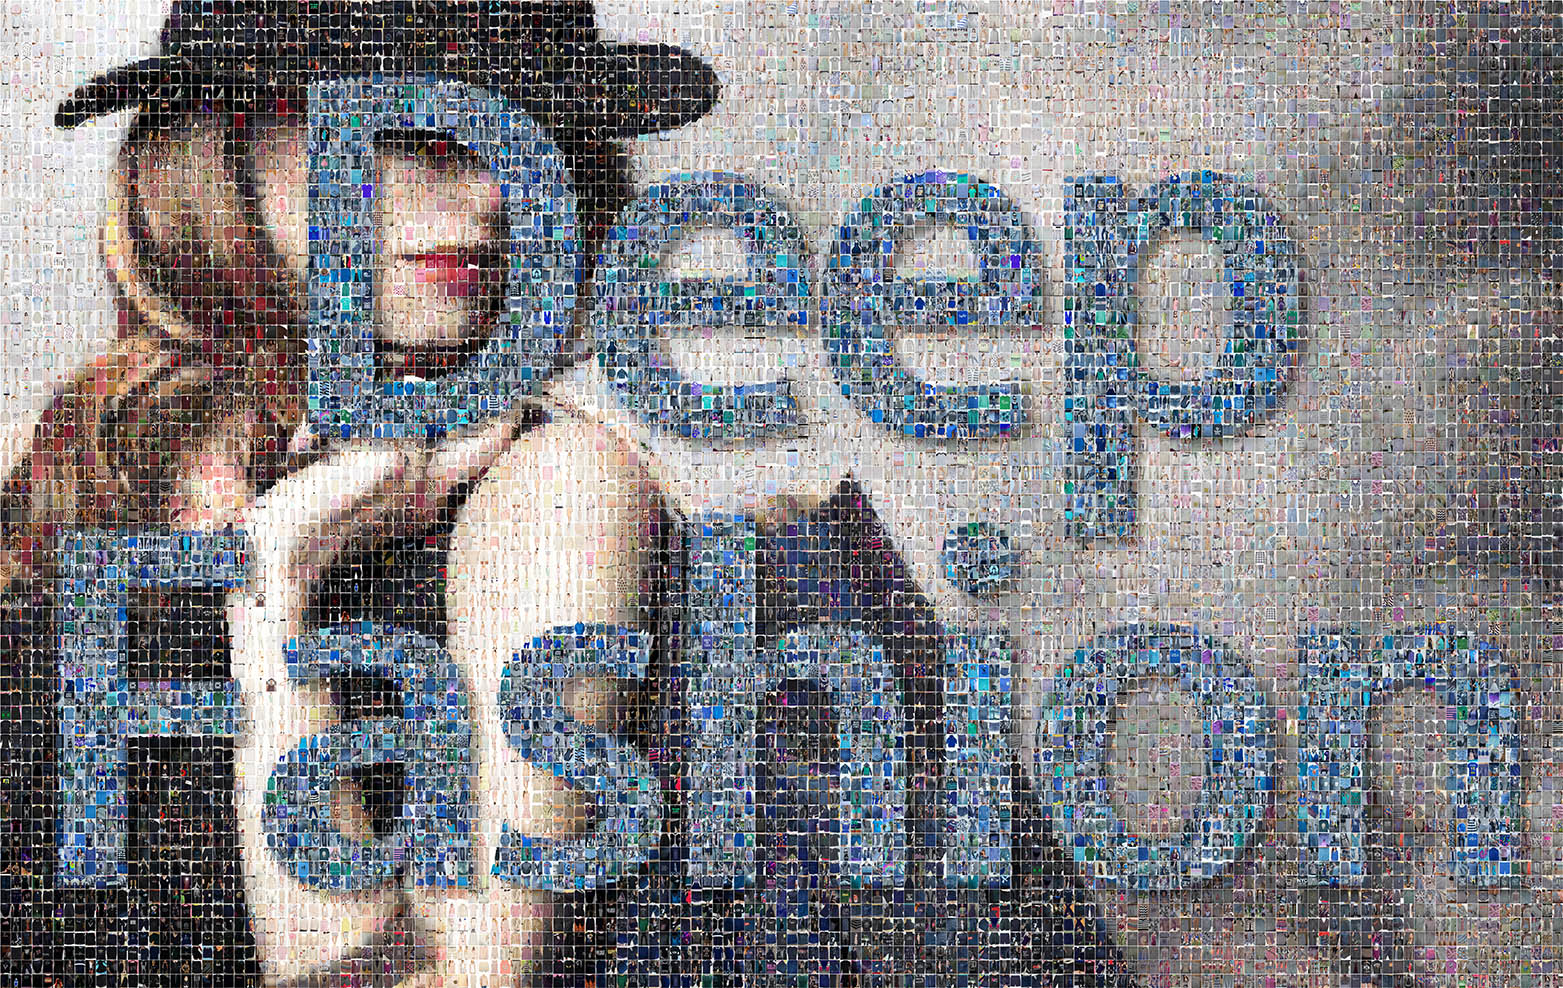 Large-scale Fashion (DeepFashion) Database